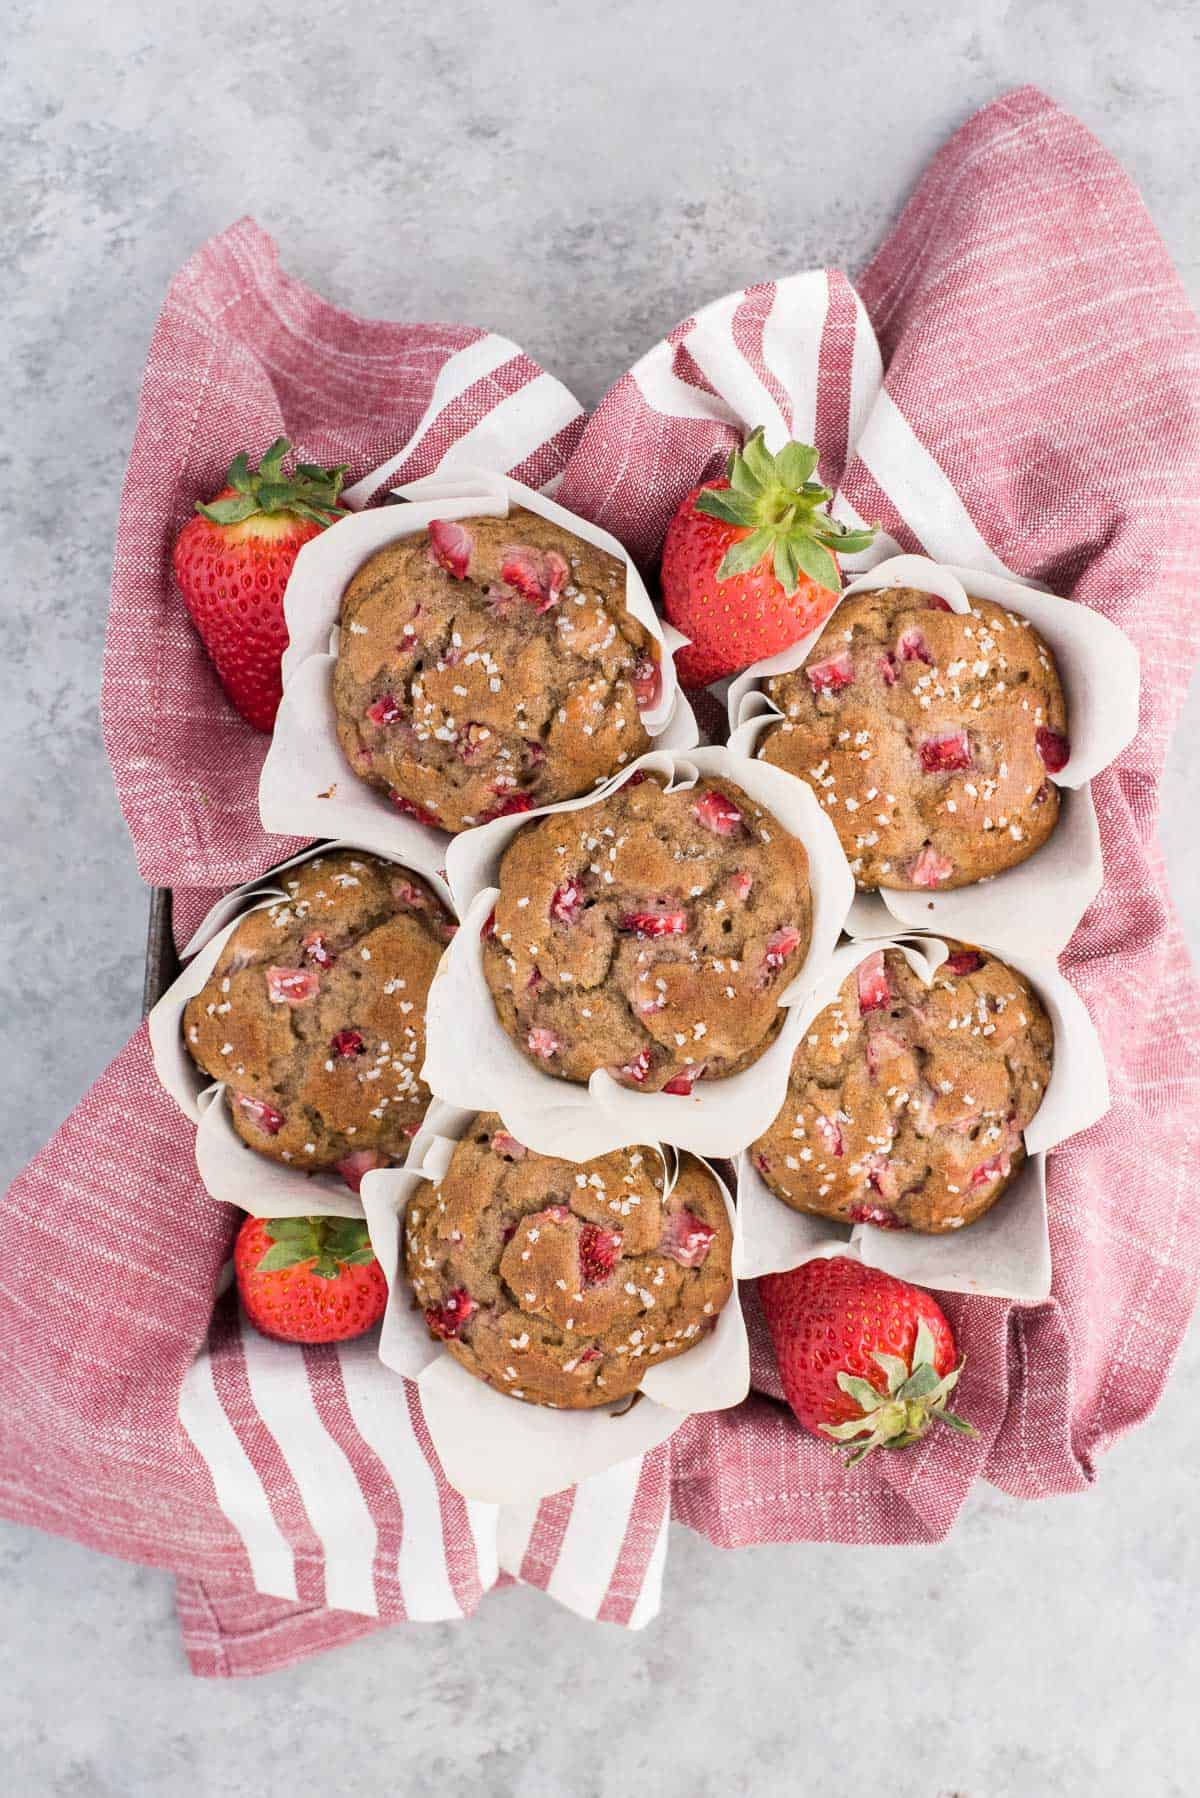 strawberry banana muffins in white parchment paper liners on red and white striped towel